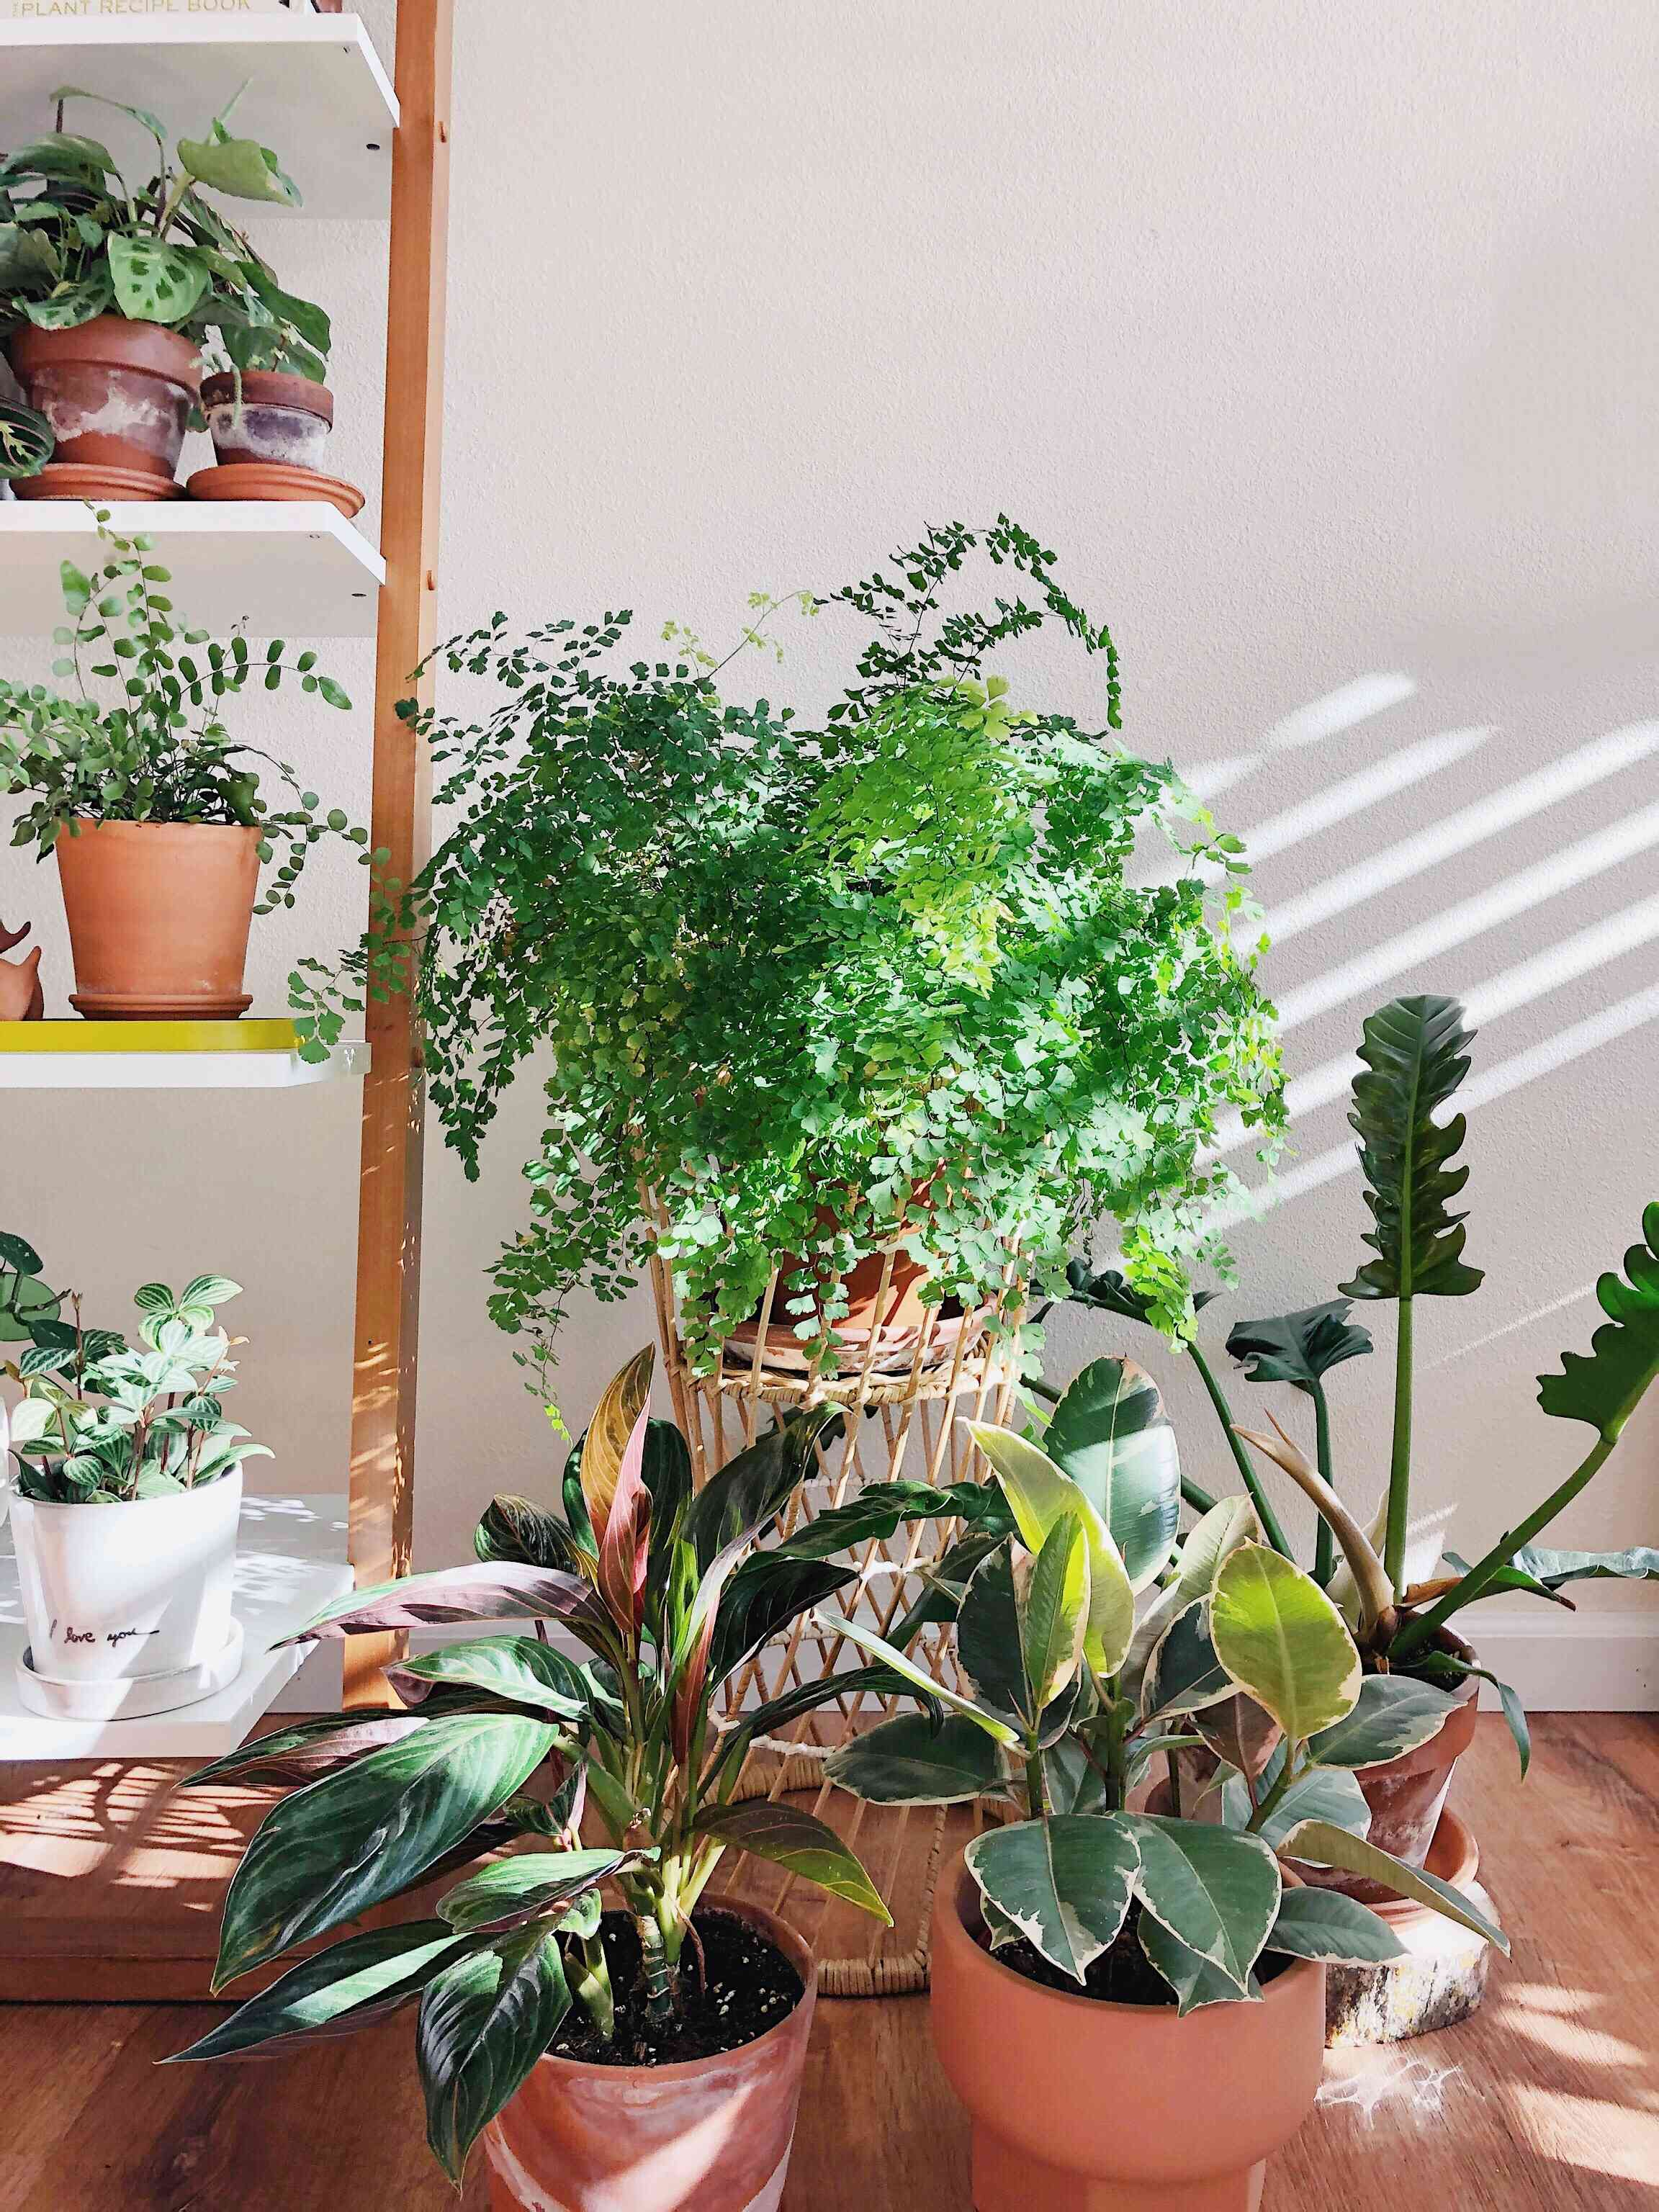 sun shining on maidenhair fern and other houseplants on wood floor against white wall